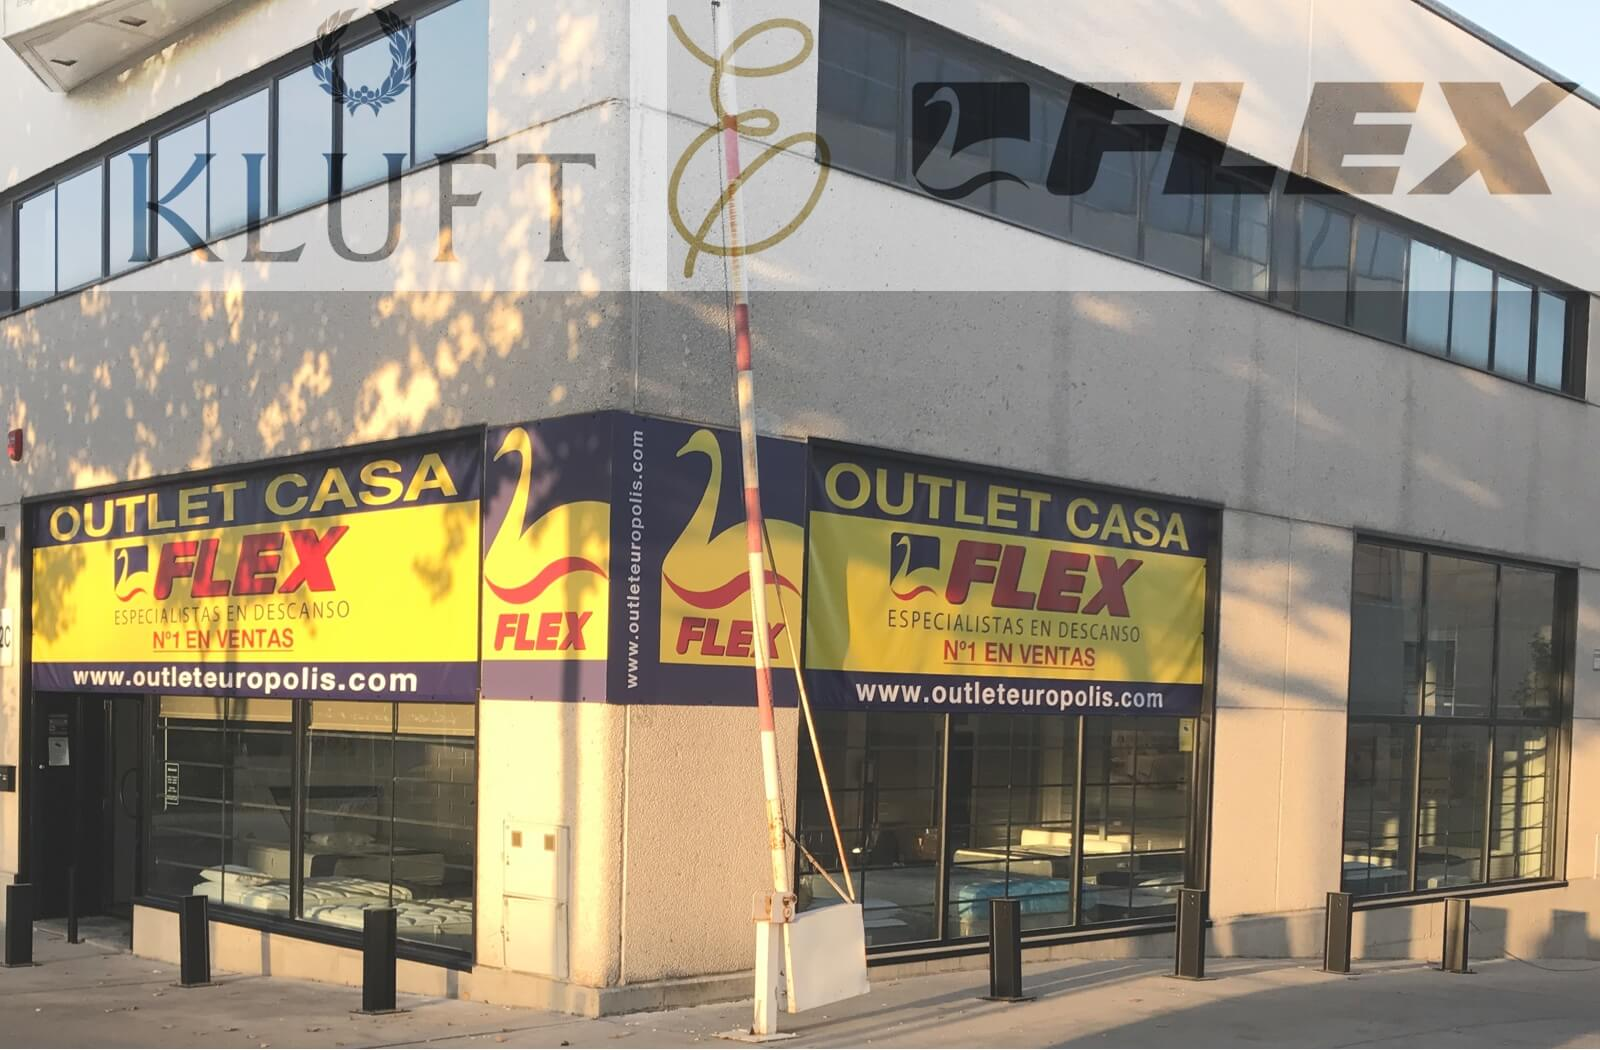 Outlet europolis ofertas permanentes en bases y for Casa outlet